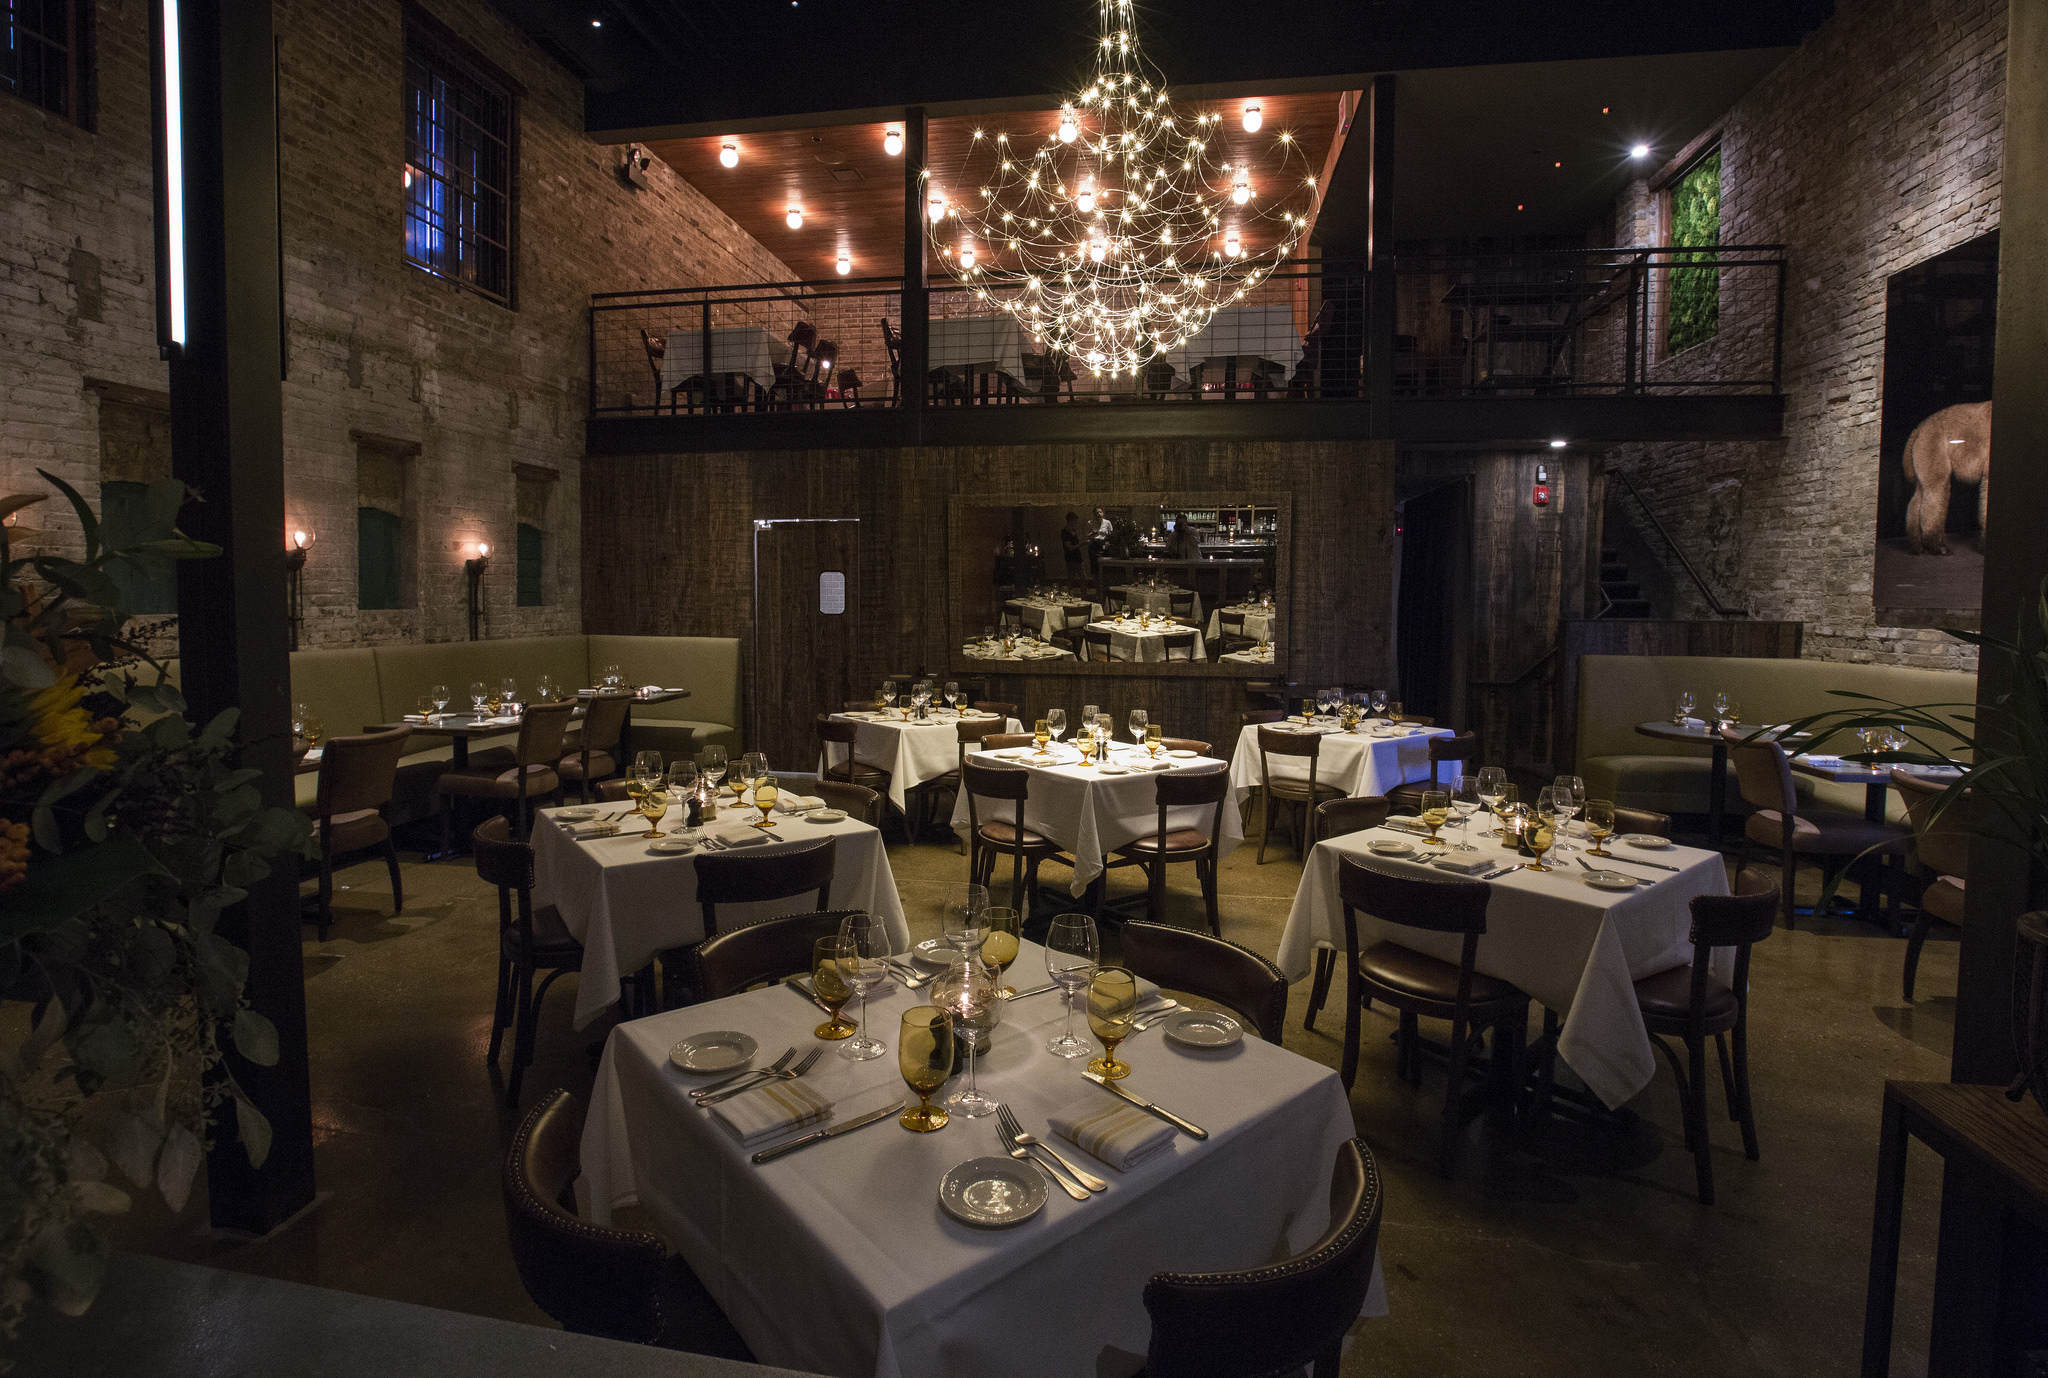 Tour Amy Morton S The Barn A Rustic 19th Century Renovation In Evanston Eater Chicago